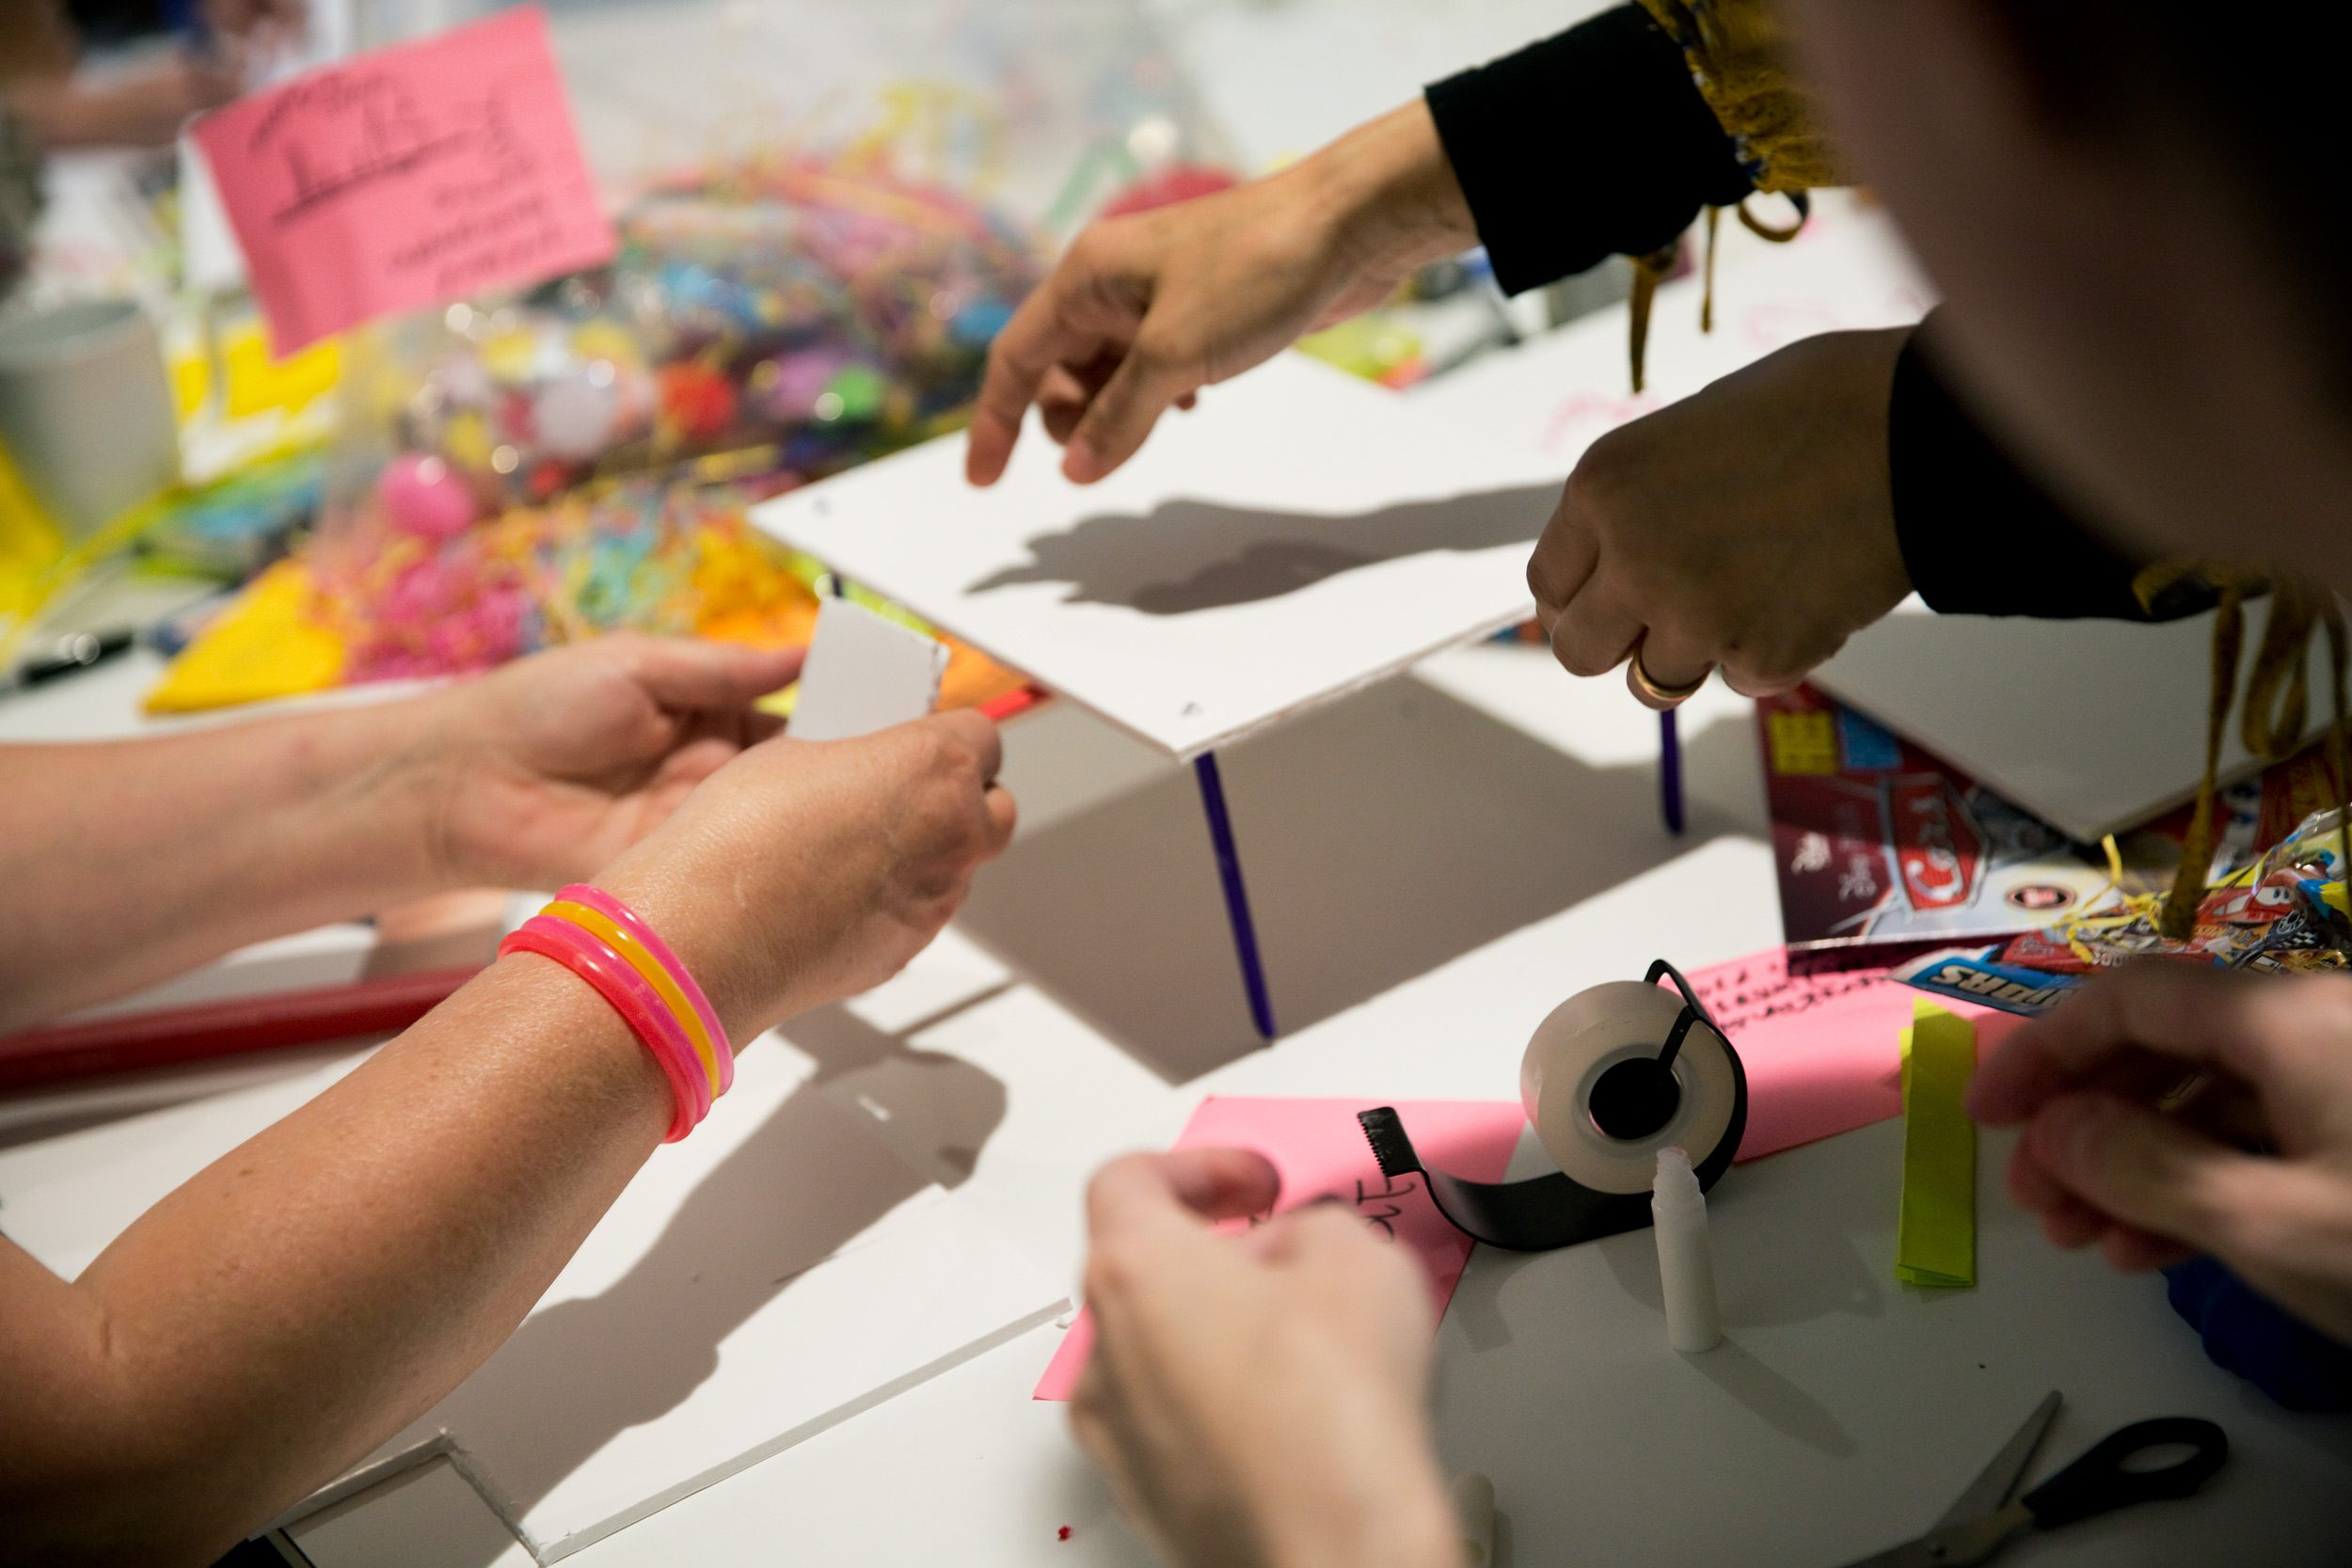 Hands working on a paper prototype. They are in action, gluing things together.